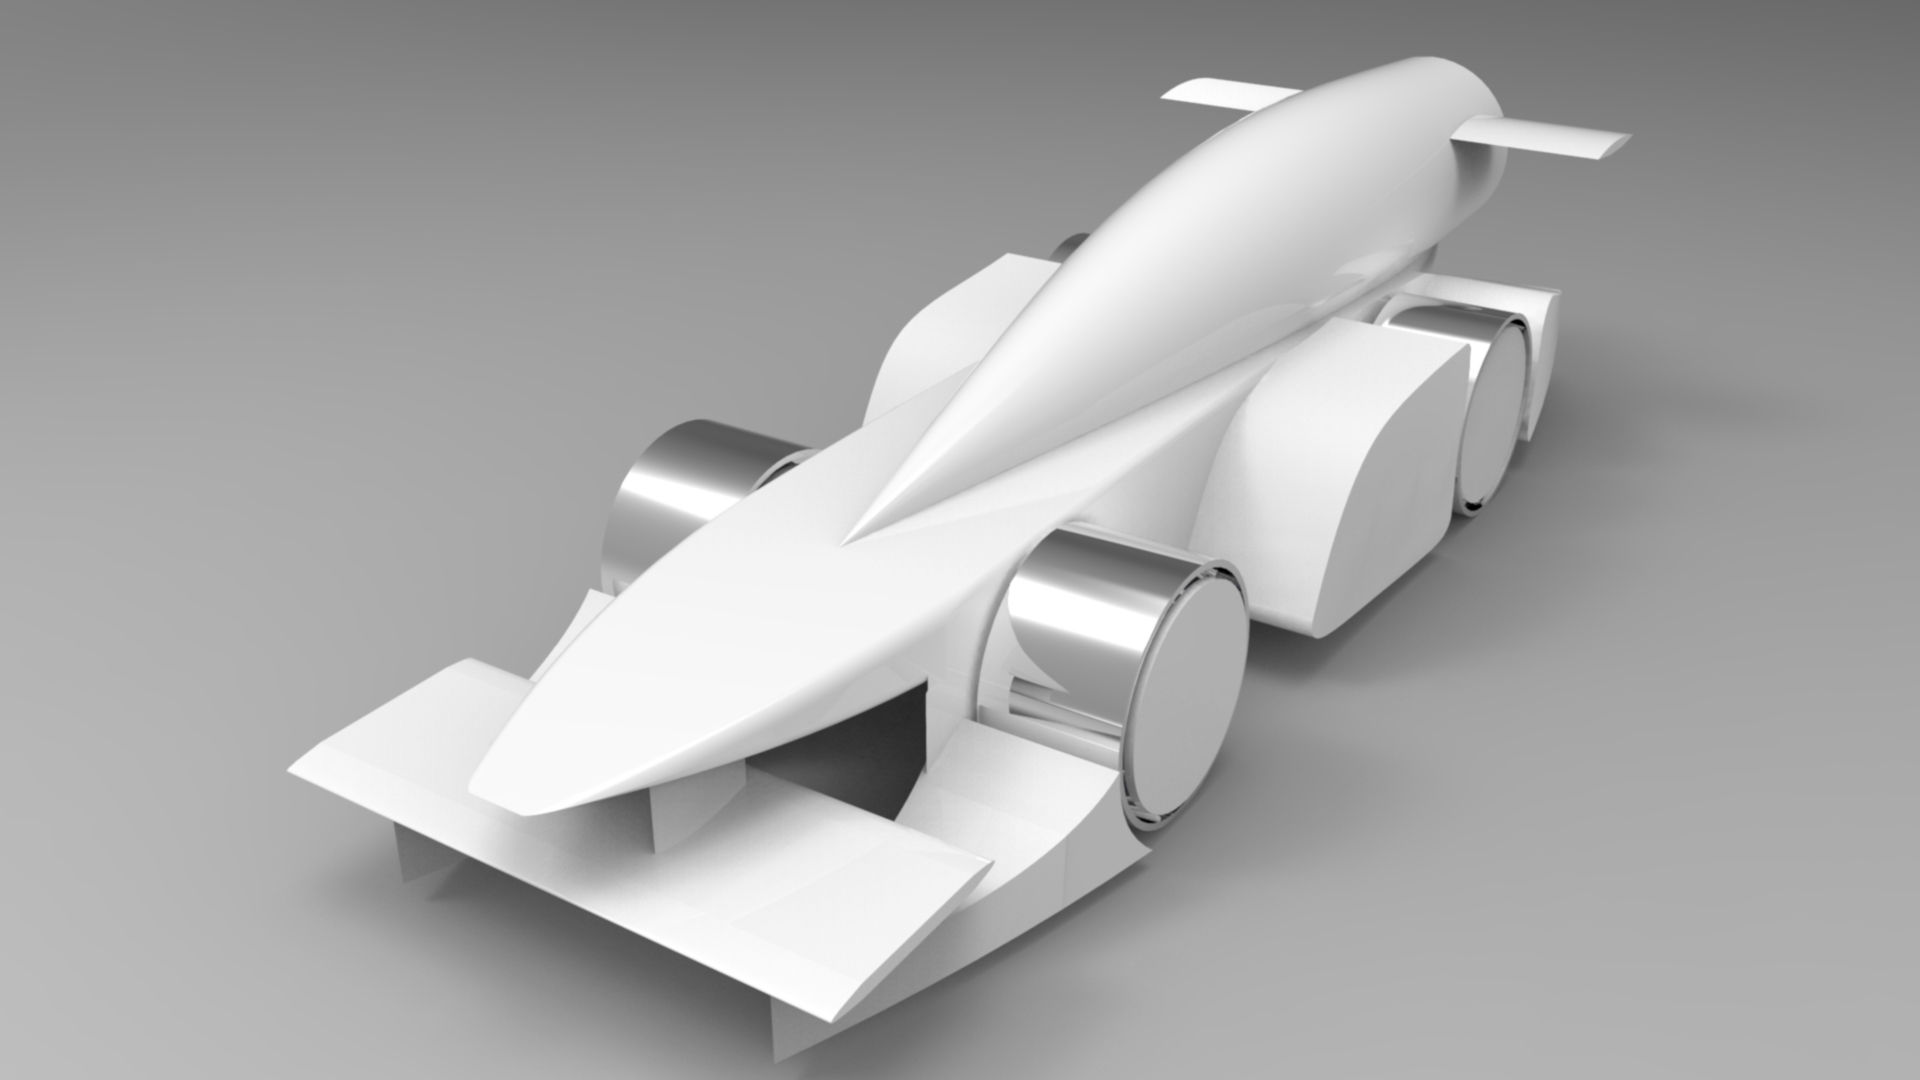 F1 In Schools Uae Prototype Car Autodesk Online Gallery